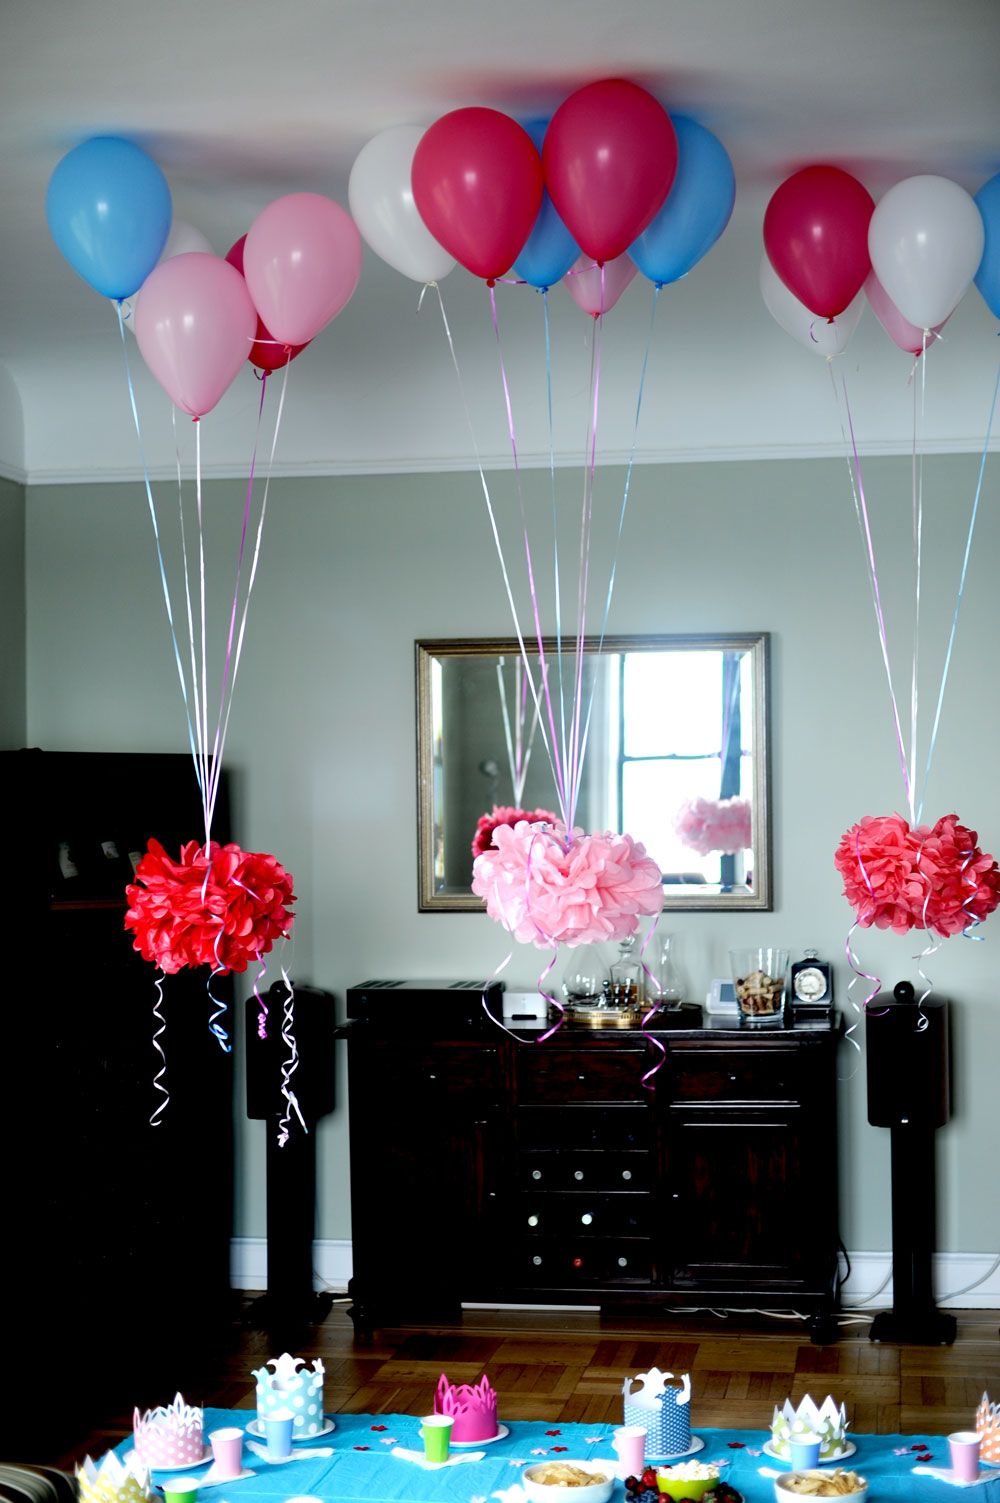 Balloons With Pictures Attached